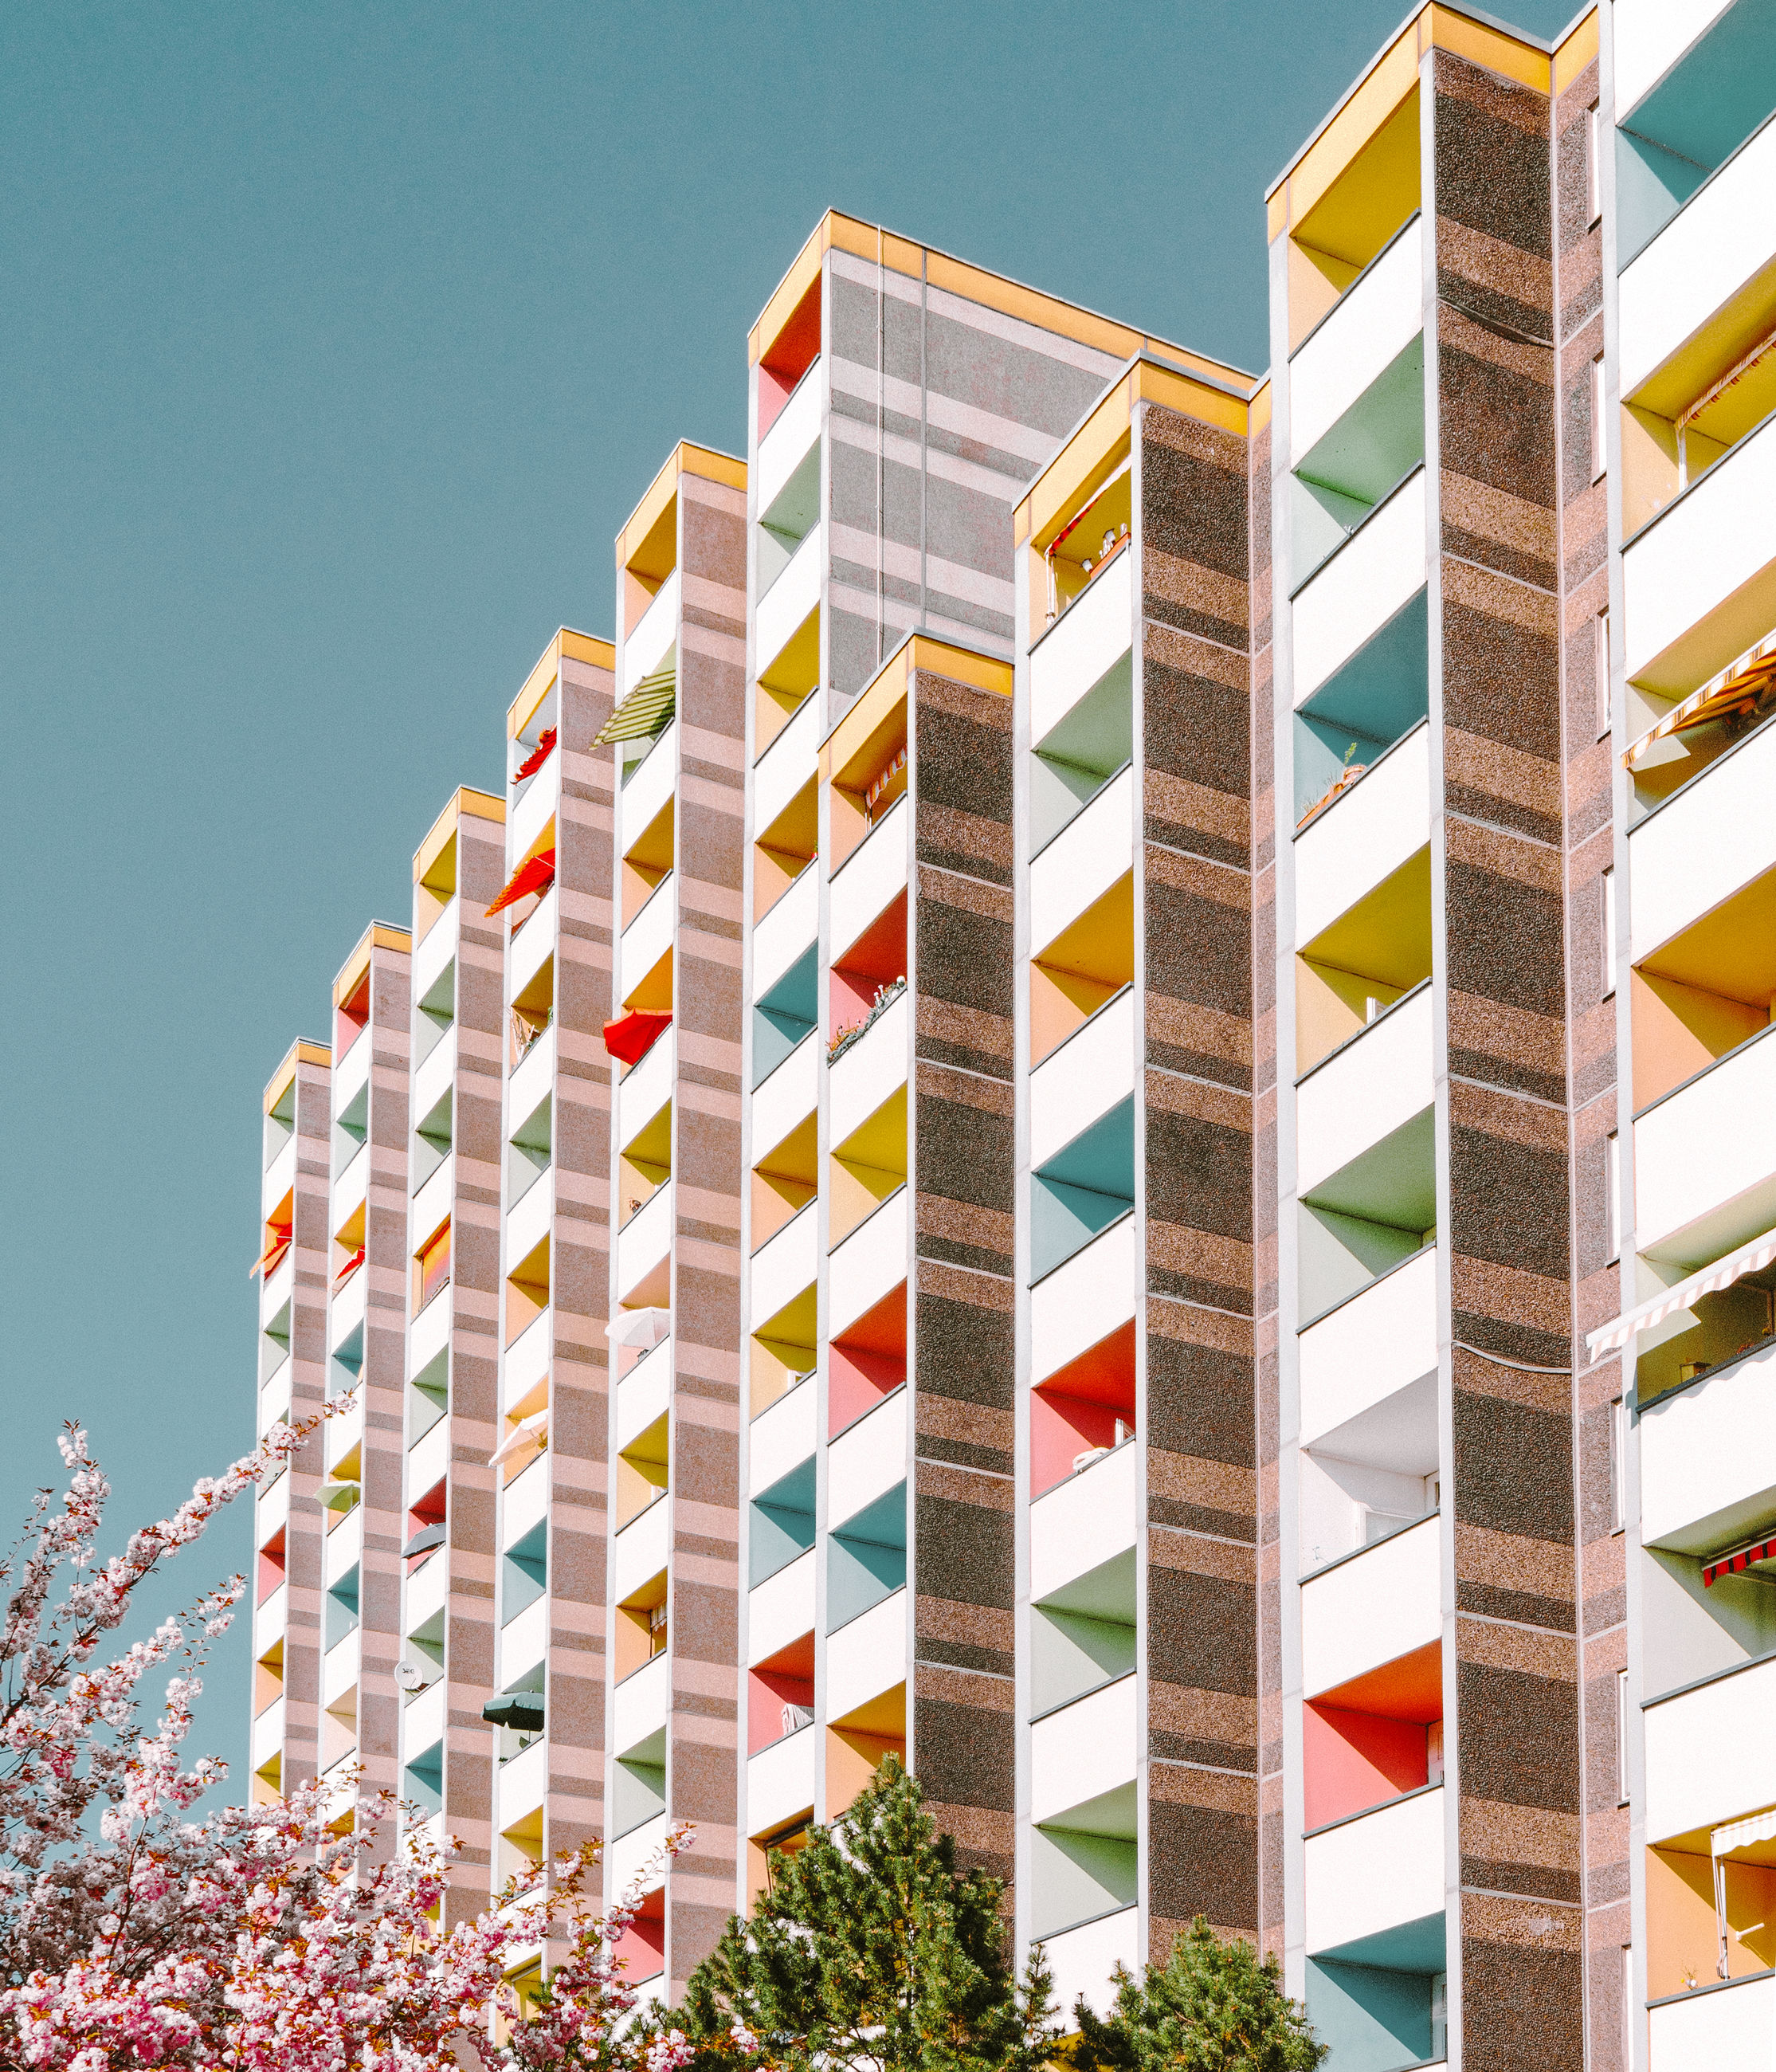 sky, nature, clear sky, no people, architecture, built structure, low angle view, multi colored, blue, building exterior, pattern, day, sunlight, outdoors, plant, shape, striped, tree, modern, city